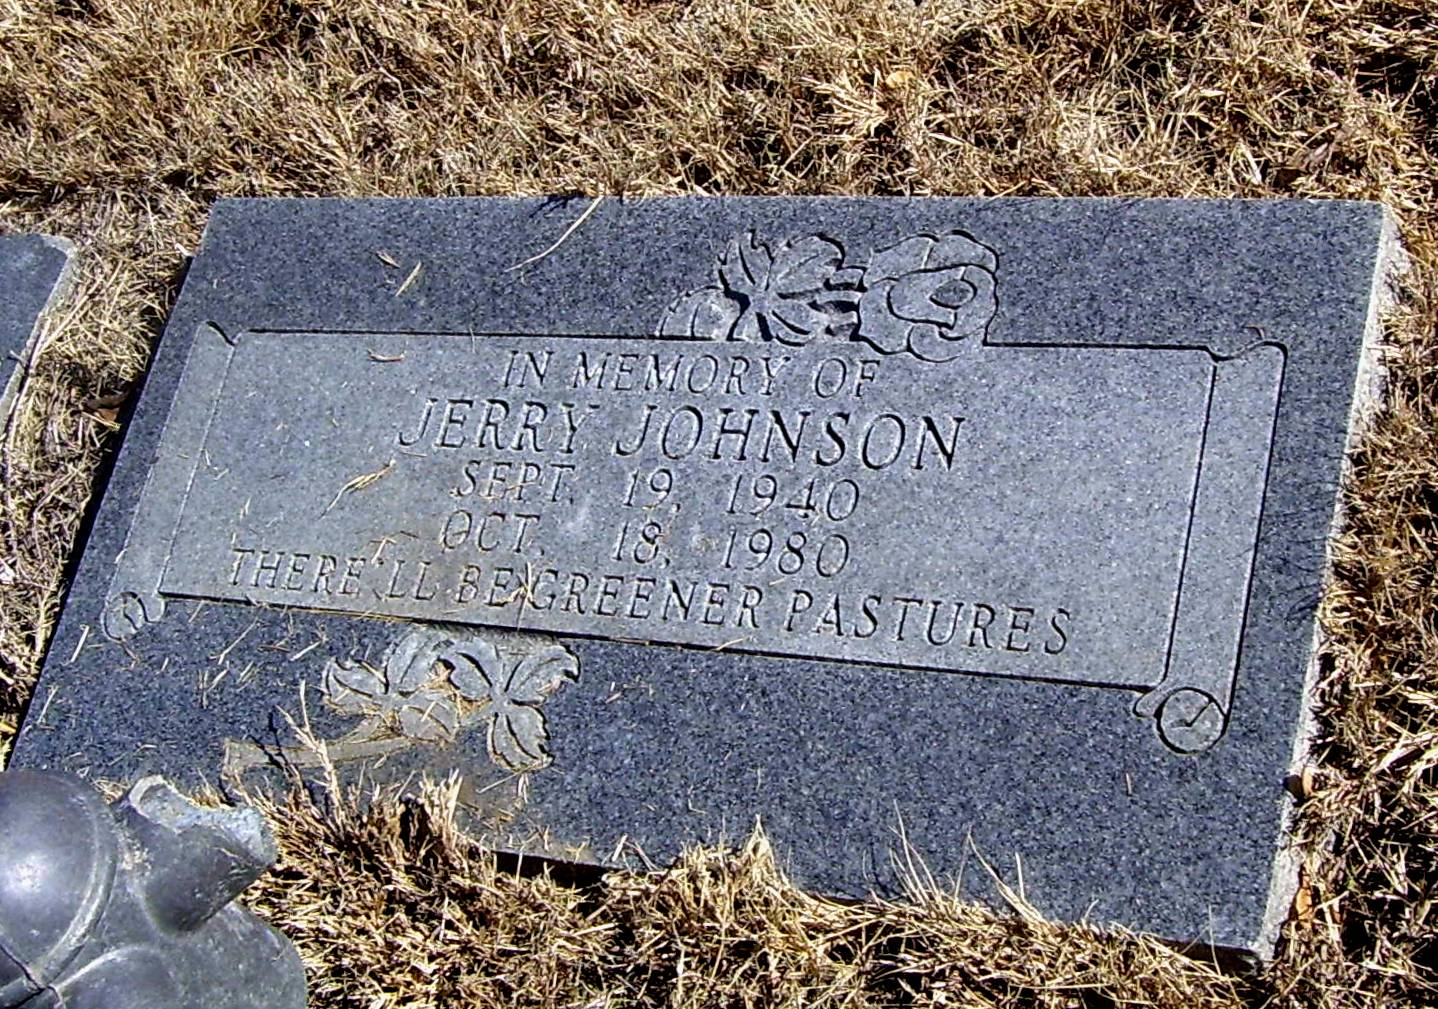 aa-jerry-johnson-gravestone.jpg